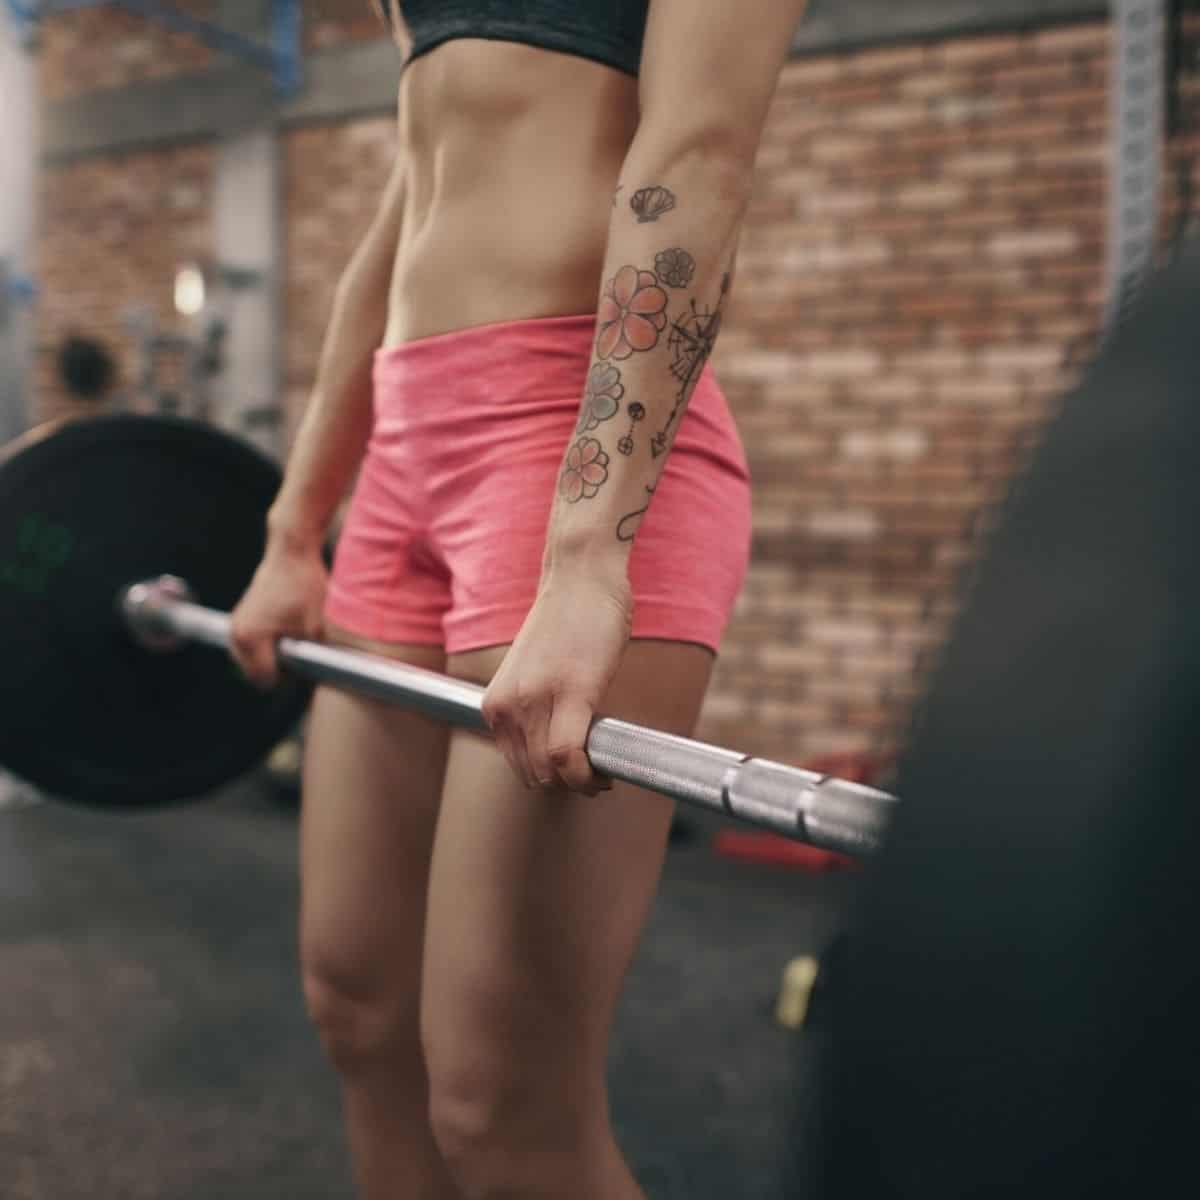 woman holding a barbell